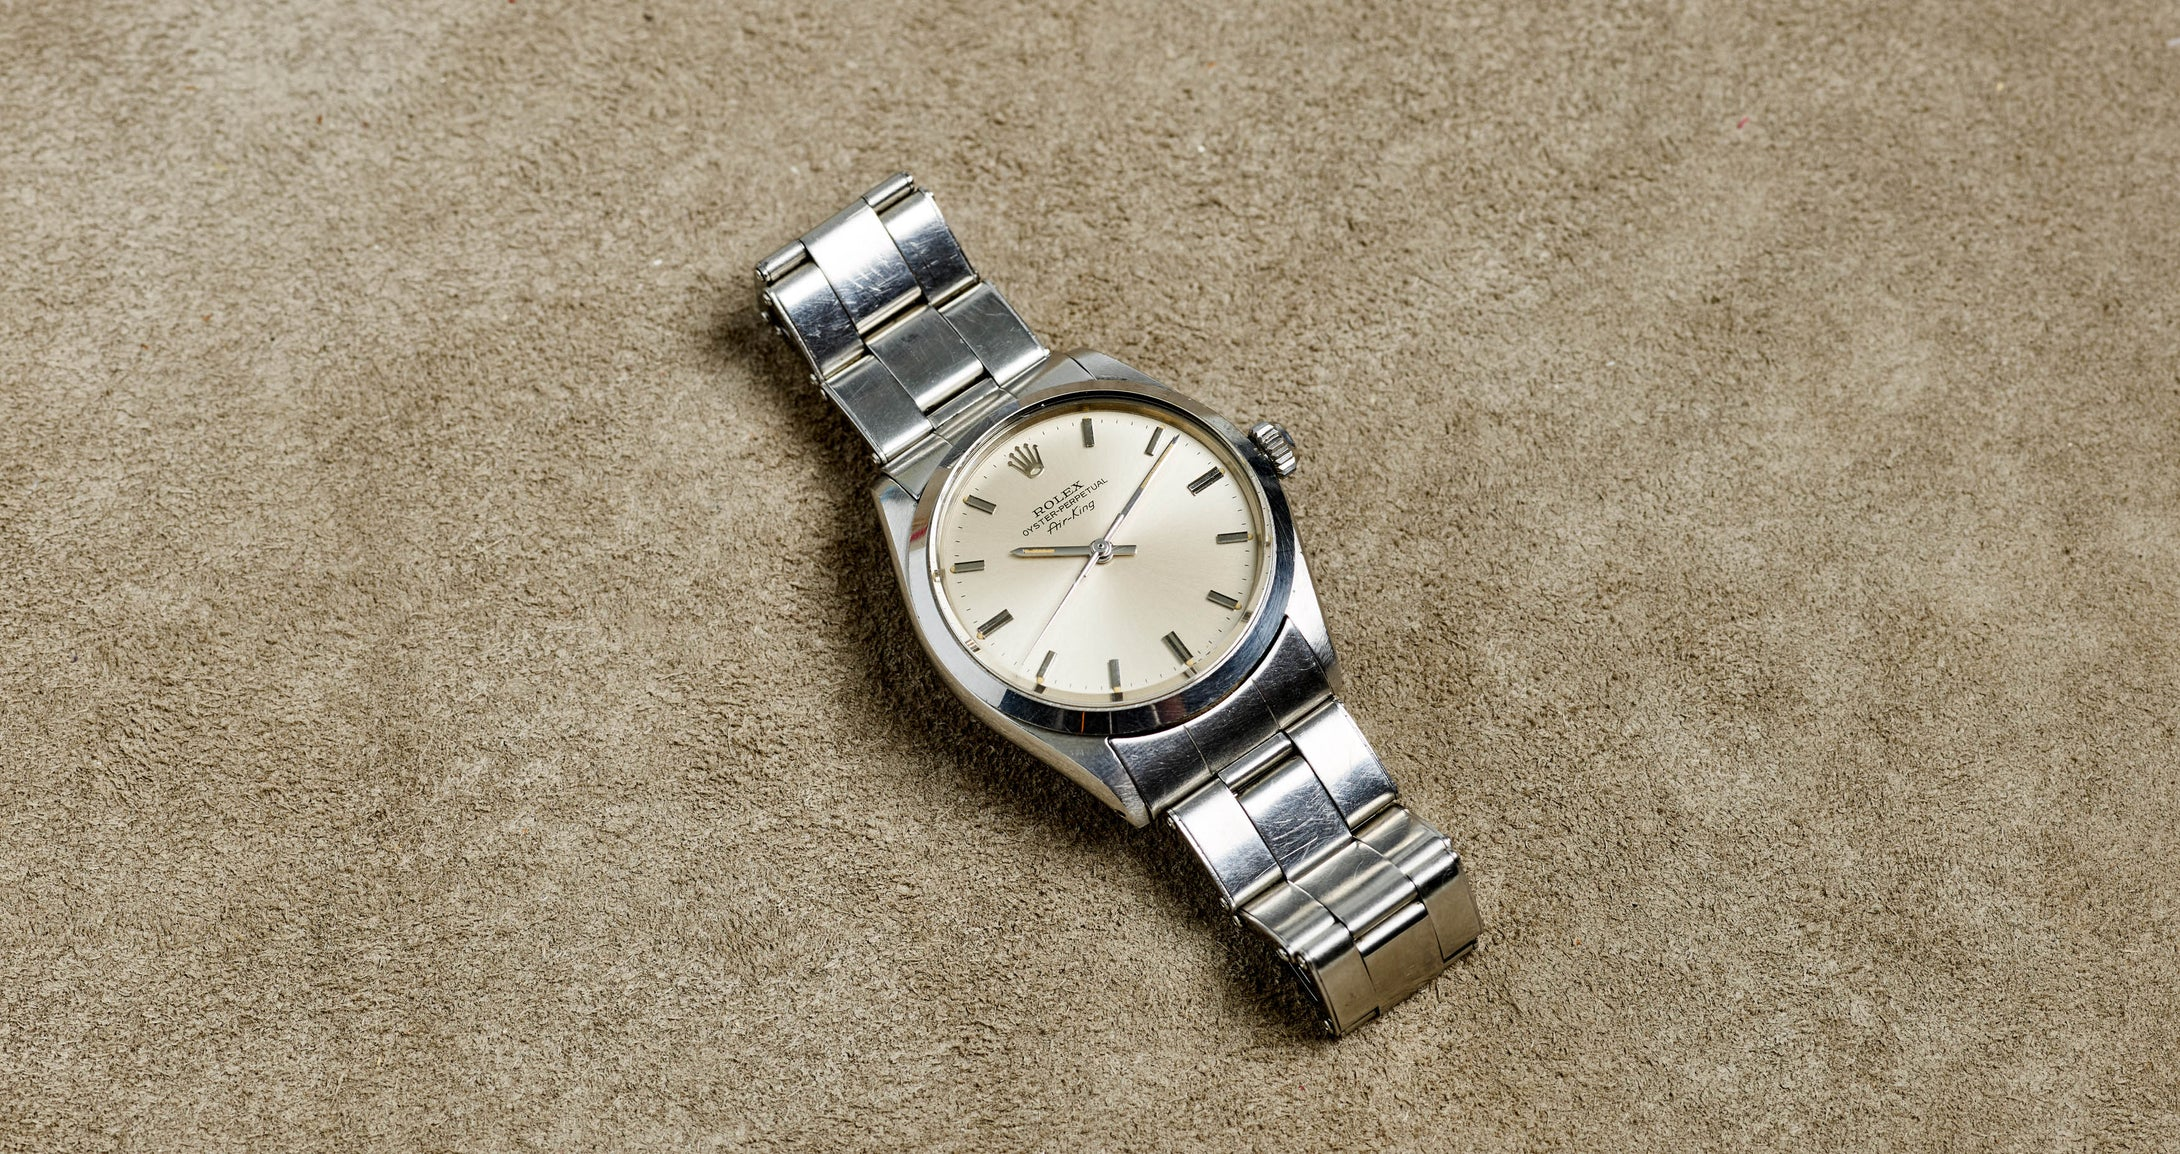 Rolex Stainless Steel Oyster Perpetual Silver Air-King Vintage Watch | Veralet